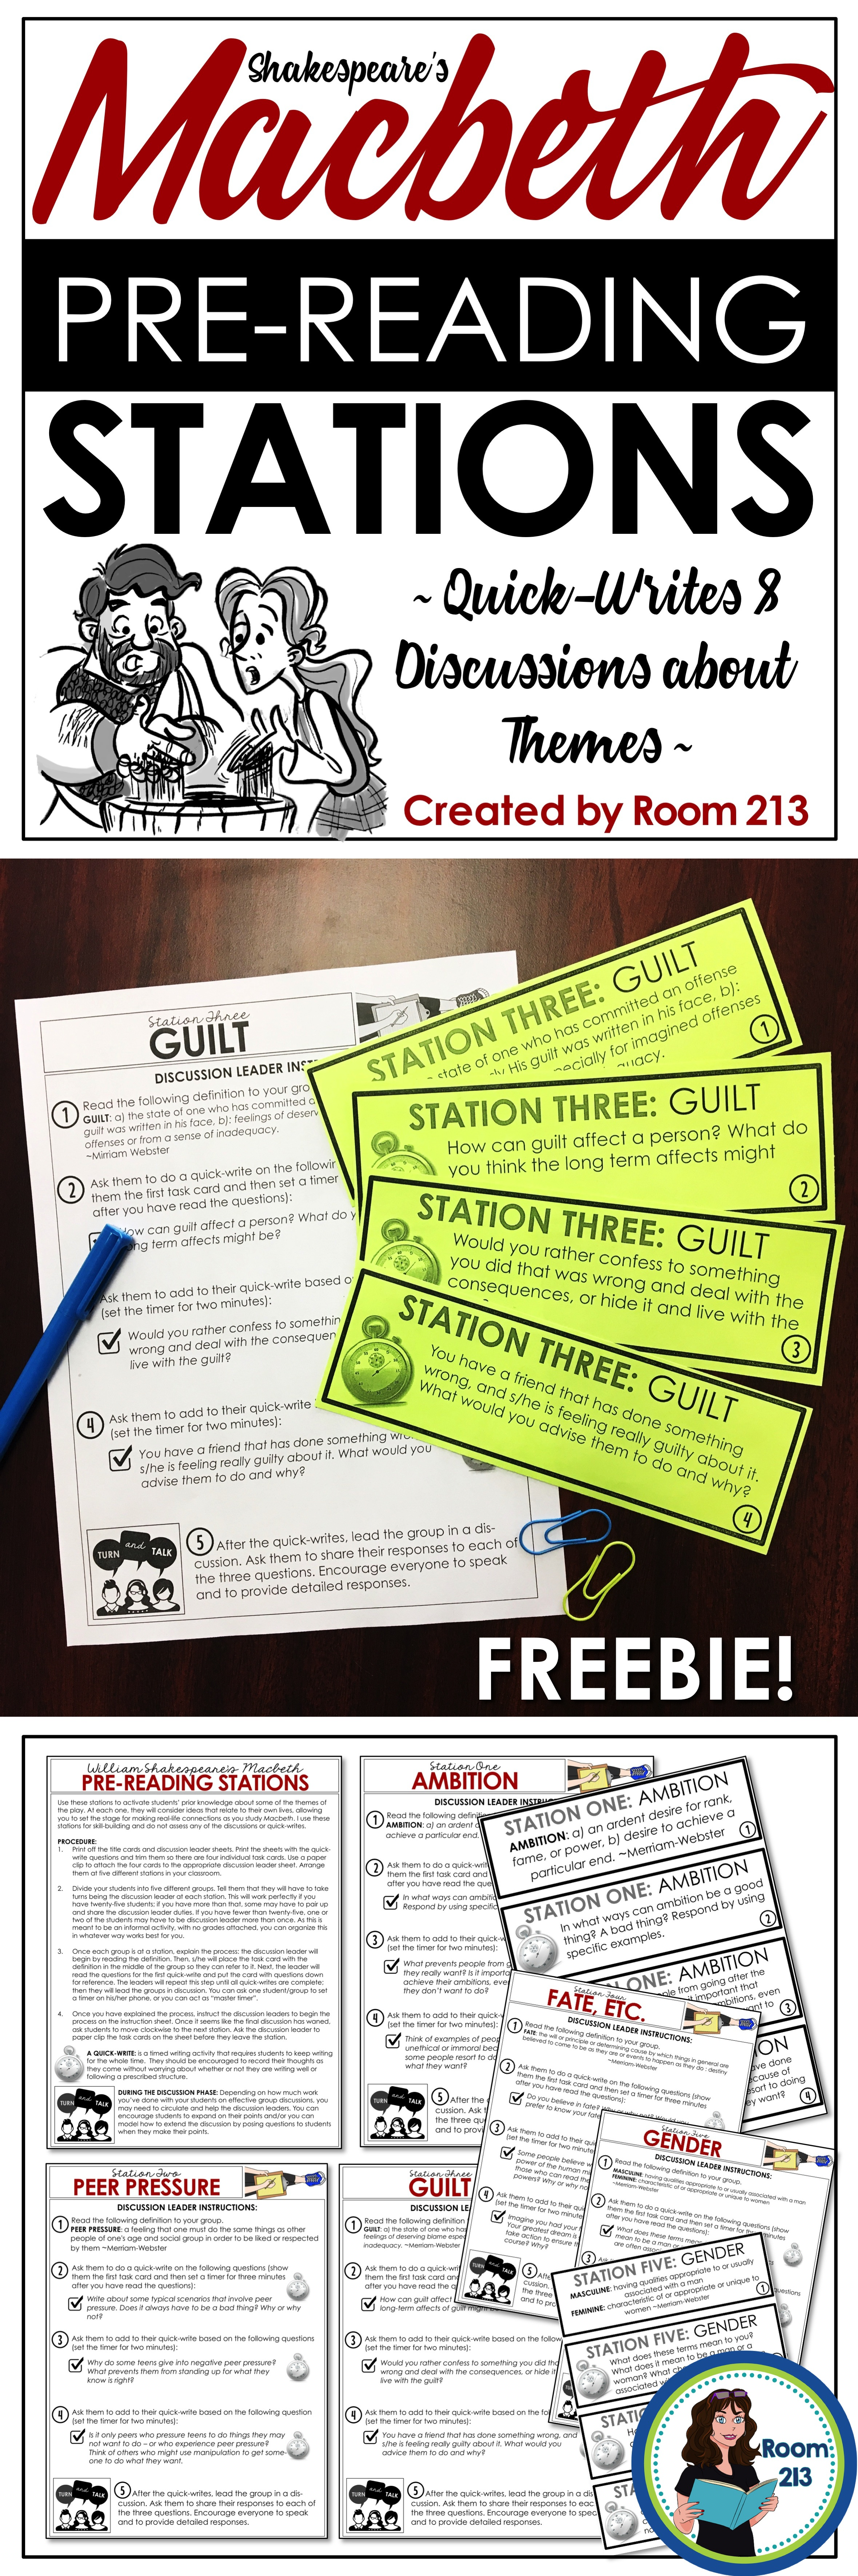 Teaching Macbeth Use This Free Pre Reading Activity To Get Your Students Focused On Important Reading Stations Teaching Shakespeare Active Learning Strategies What are some pre reading activities